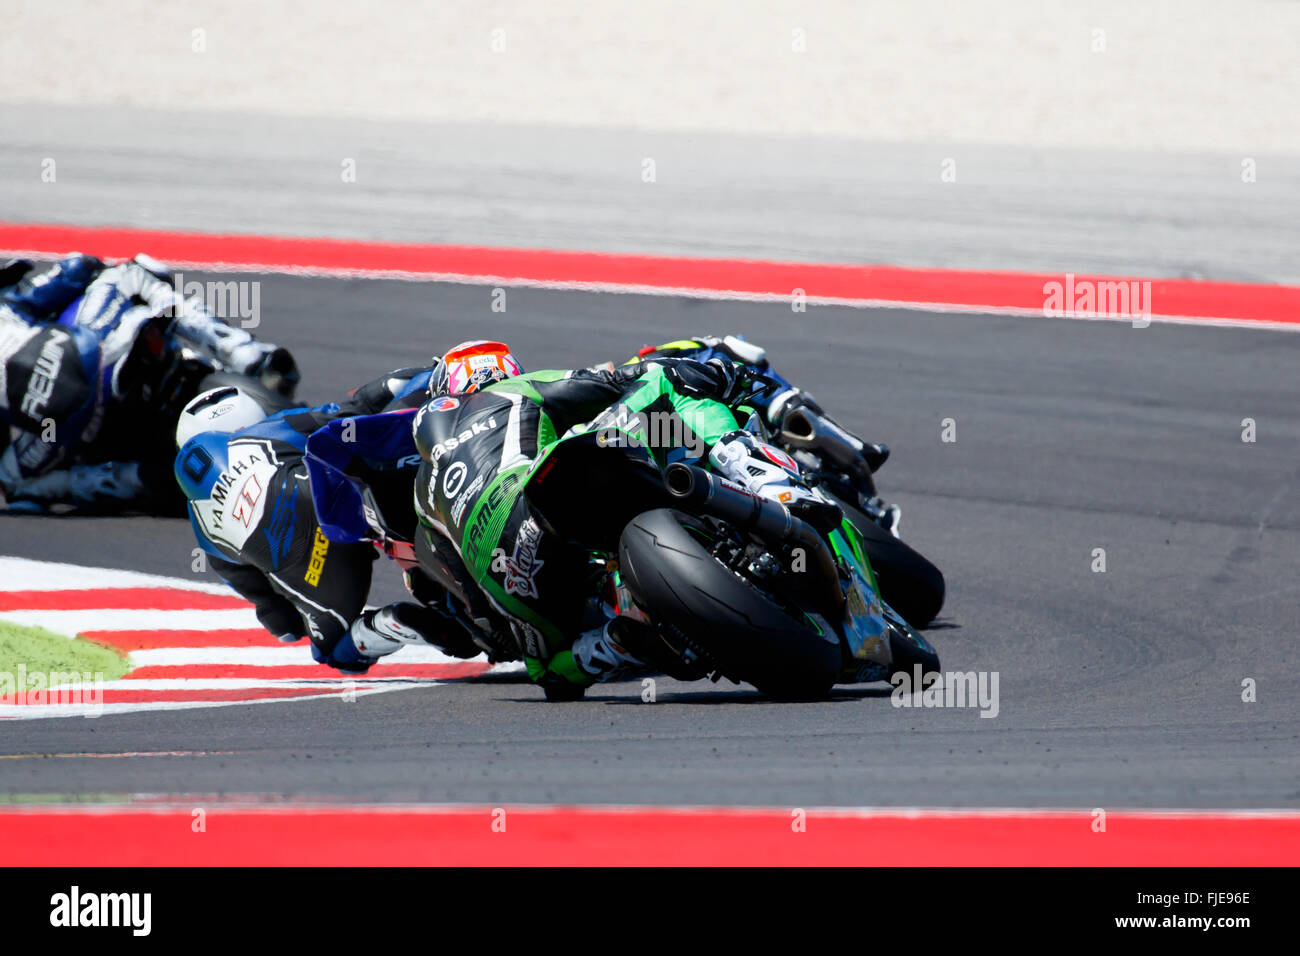 Misano Adriatico, Italy - June 21, 2015: Kawasaki ZX-10R of Team Pedercini, driven by STARING Bryan Stock Photo